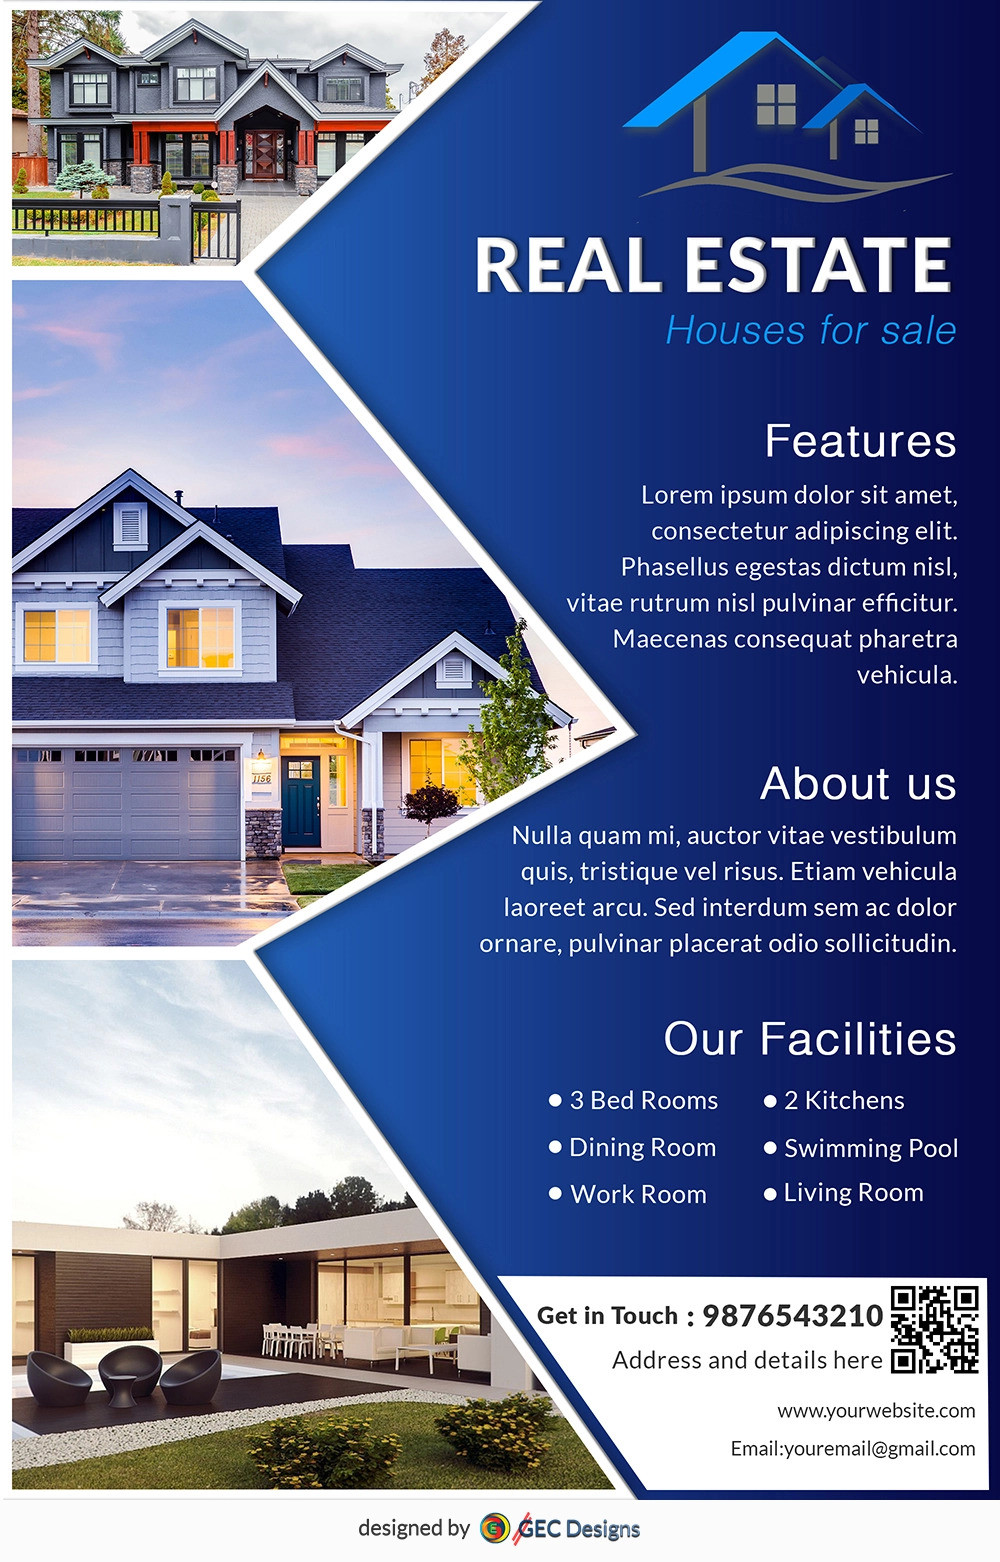 Download Free House for sale Real Estate flyer design templates